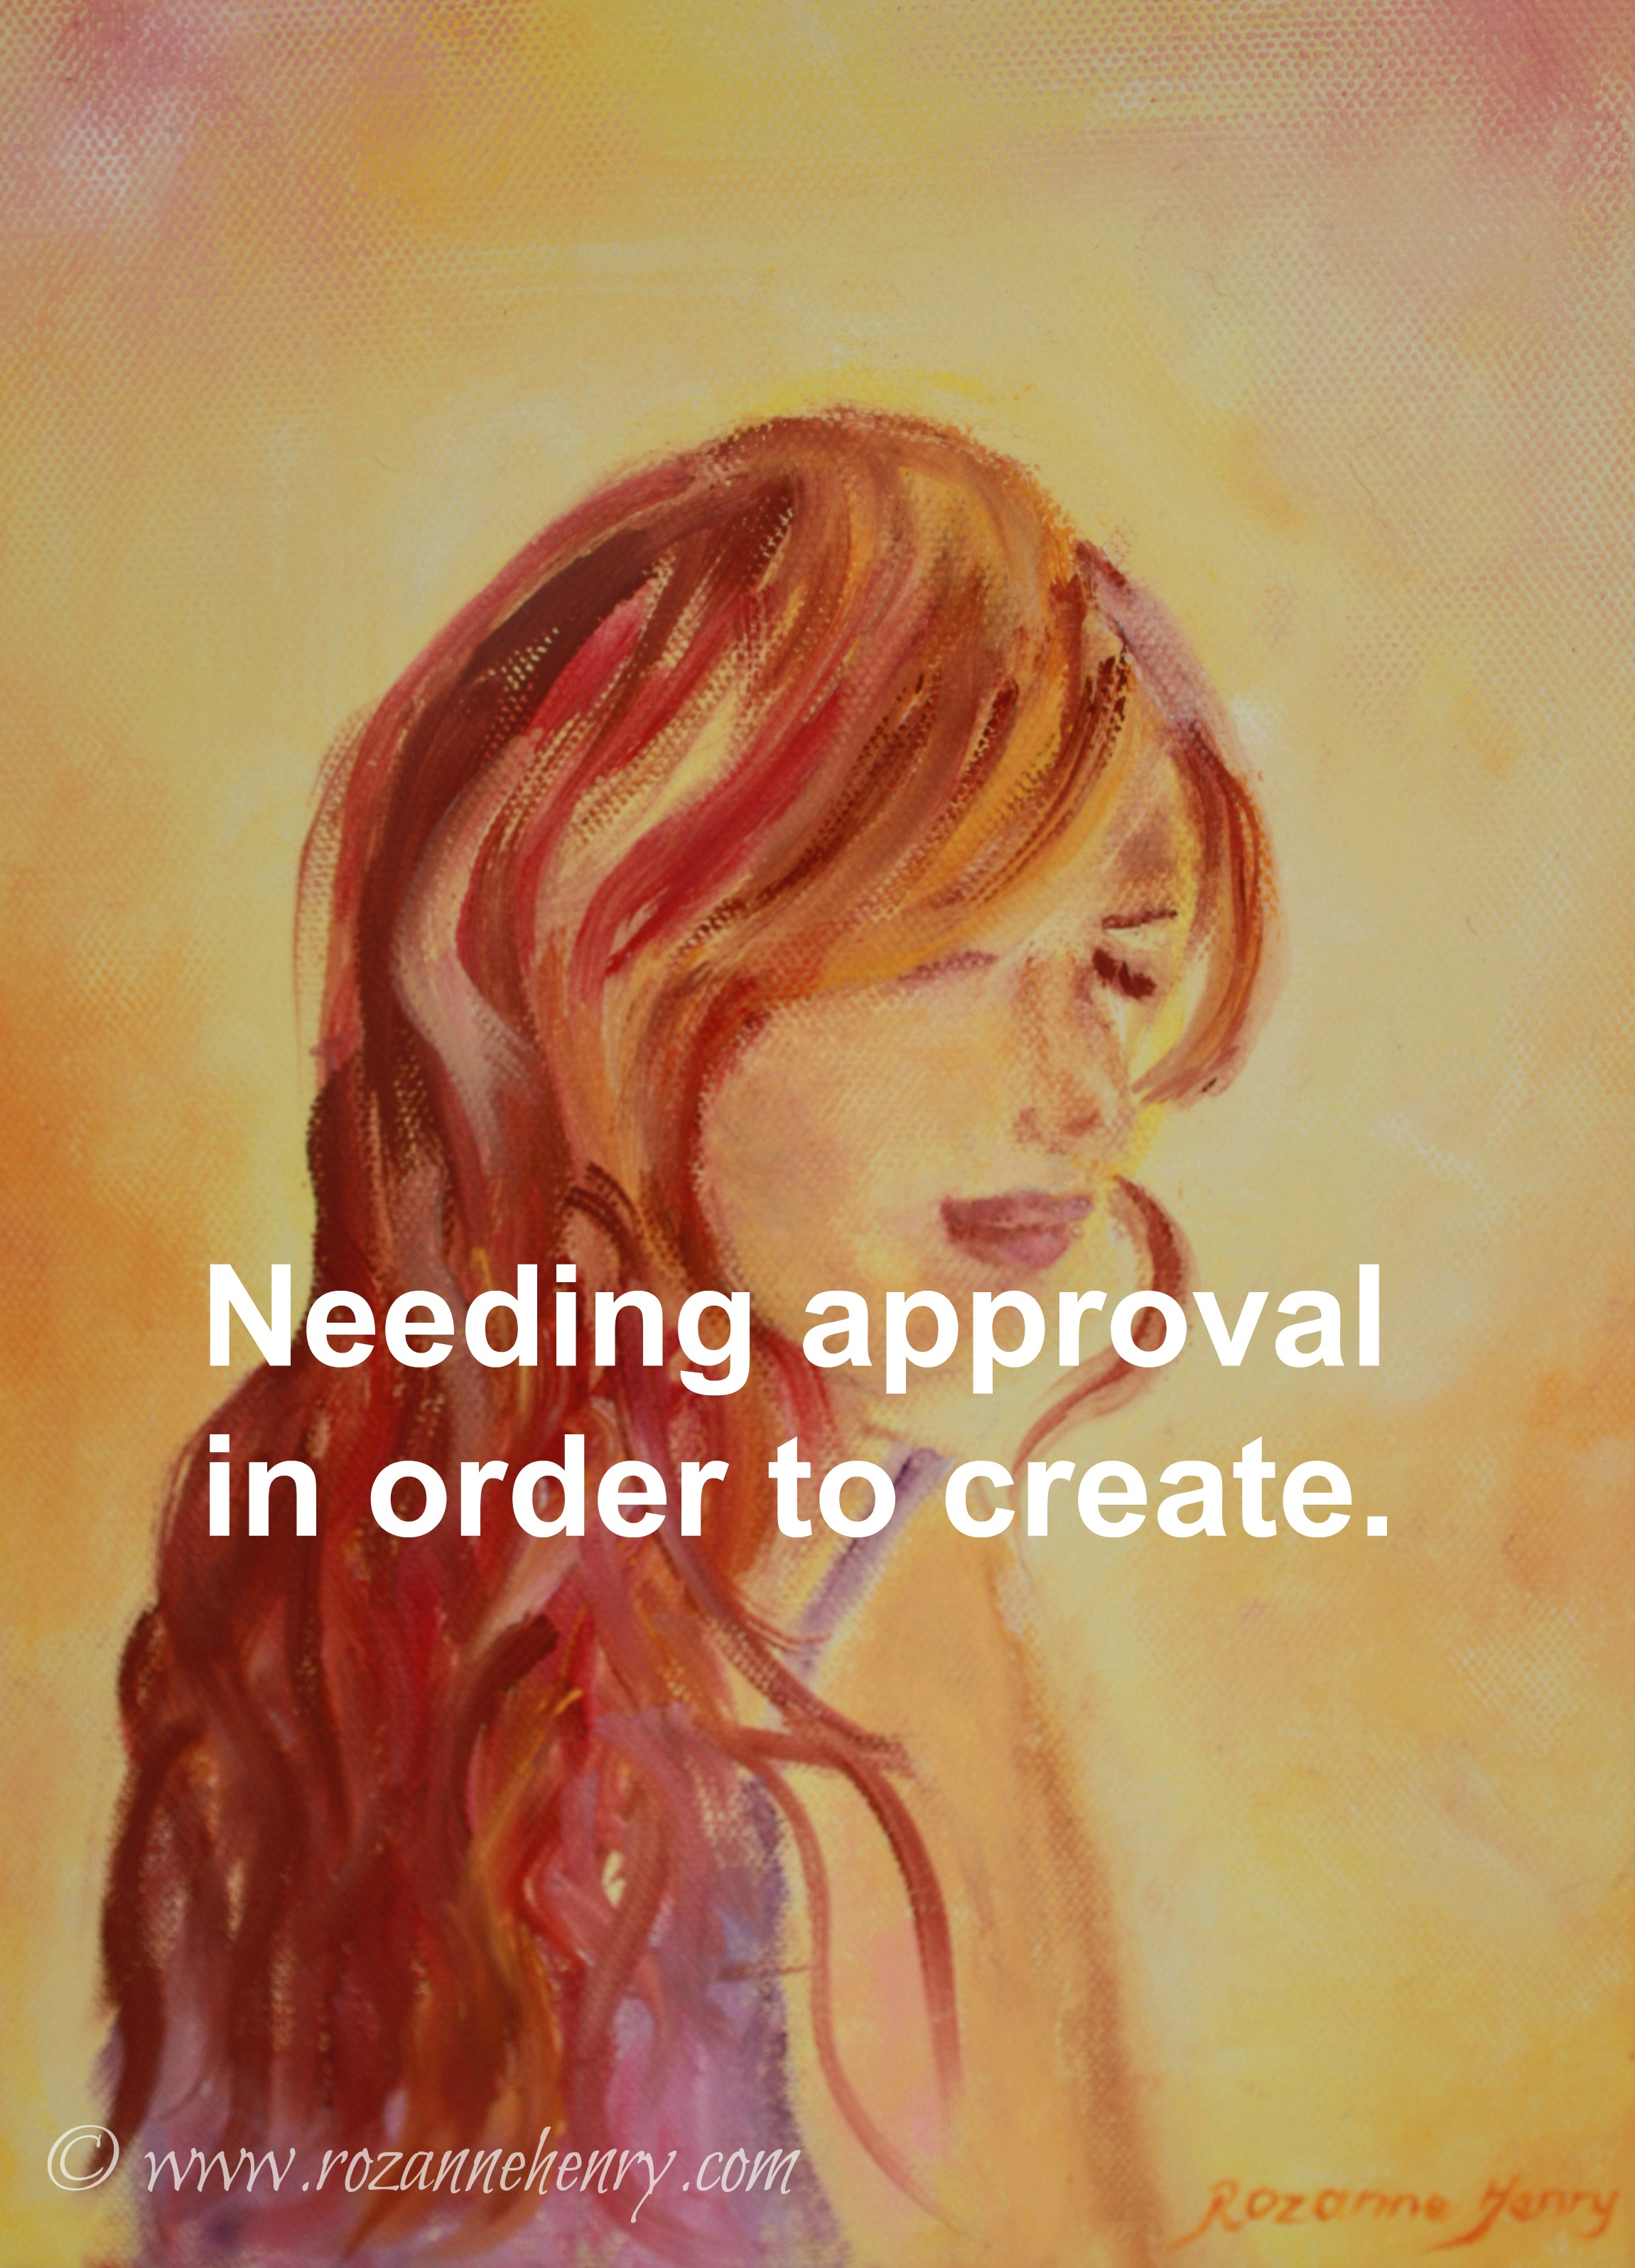 -lady painting with words needing approval in order to create